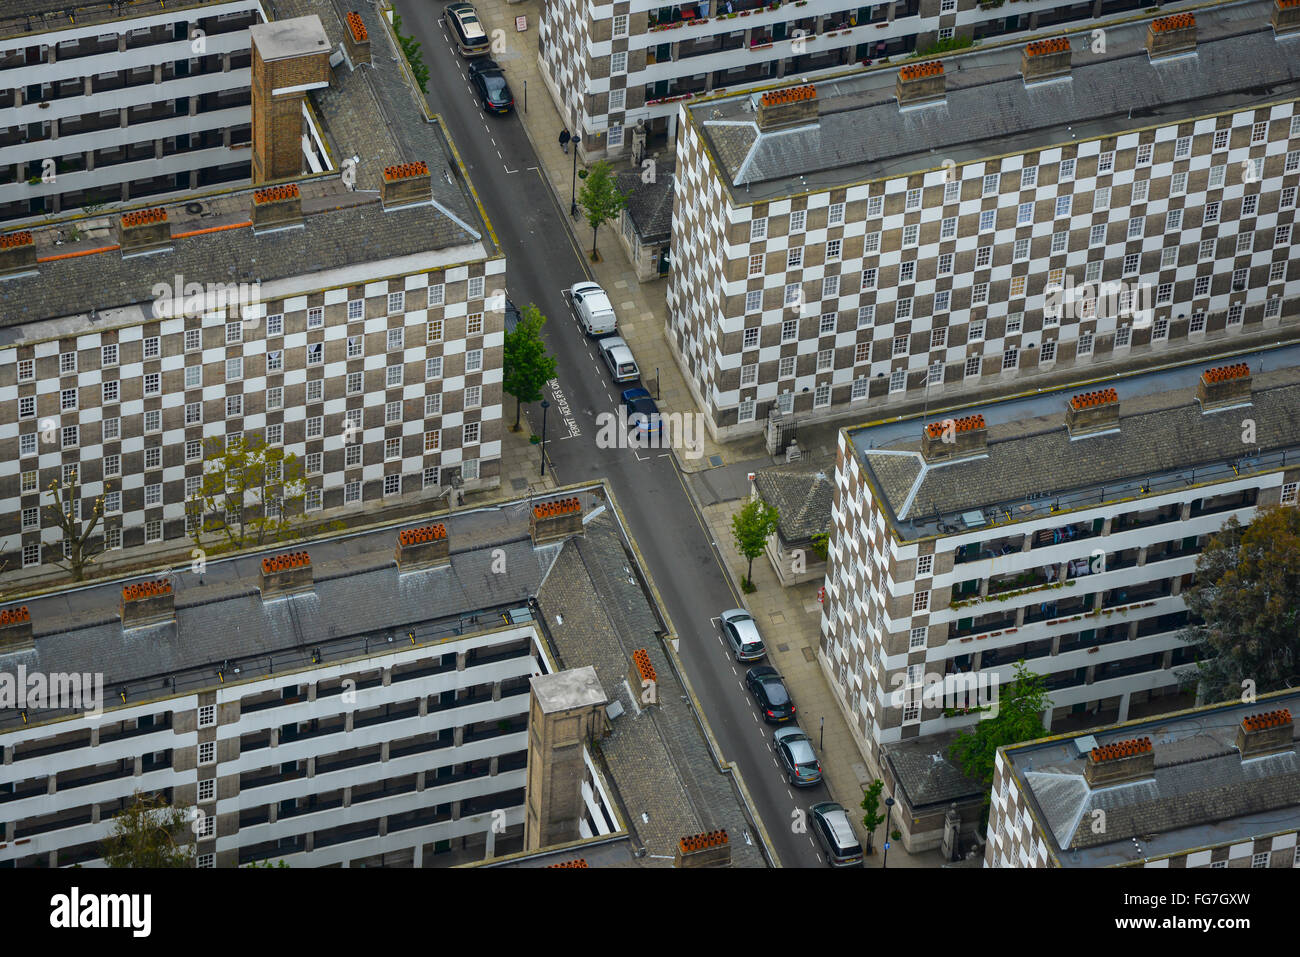 An aerial view of the Page Street social housing designed by Edwin Lutyens in Westminster - Stock Image